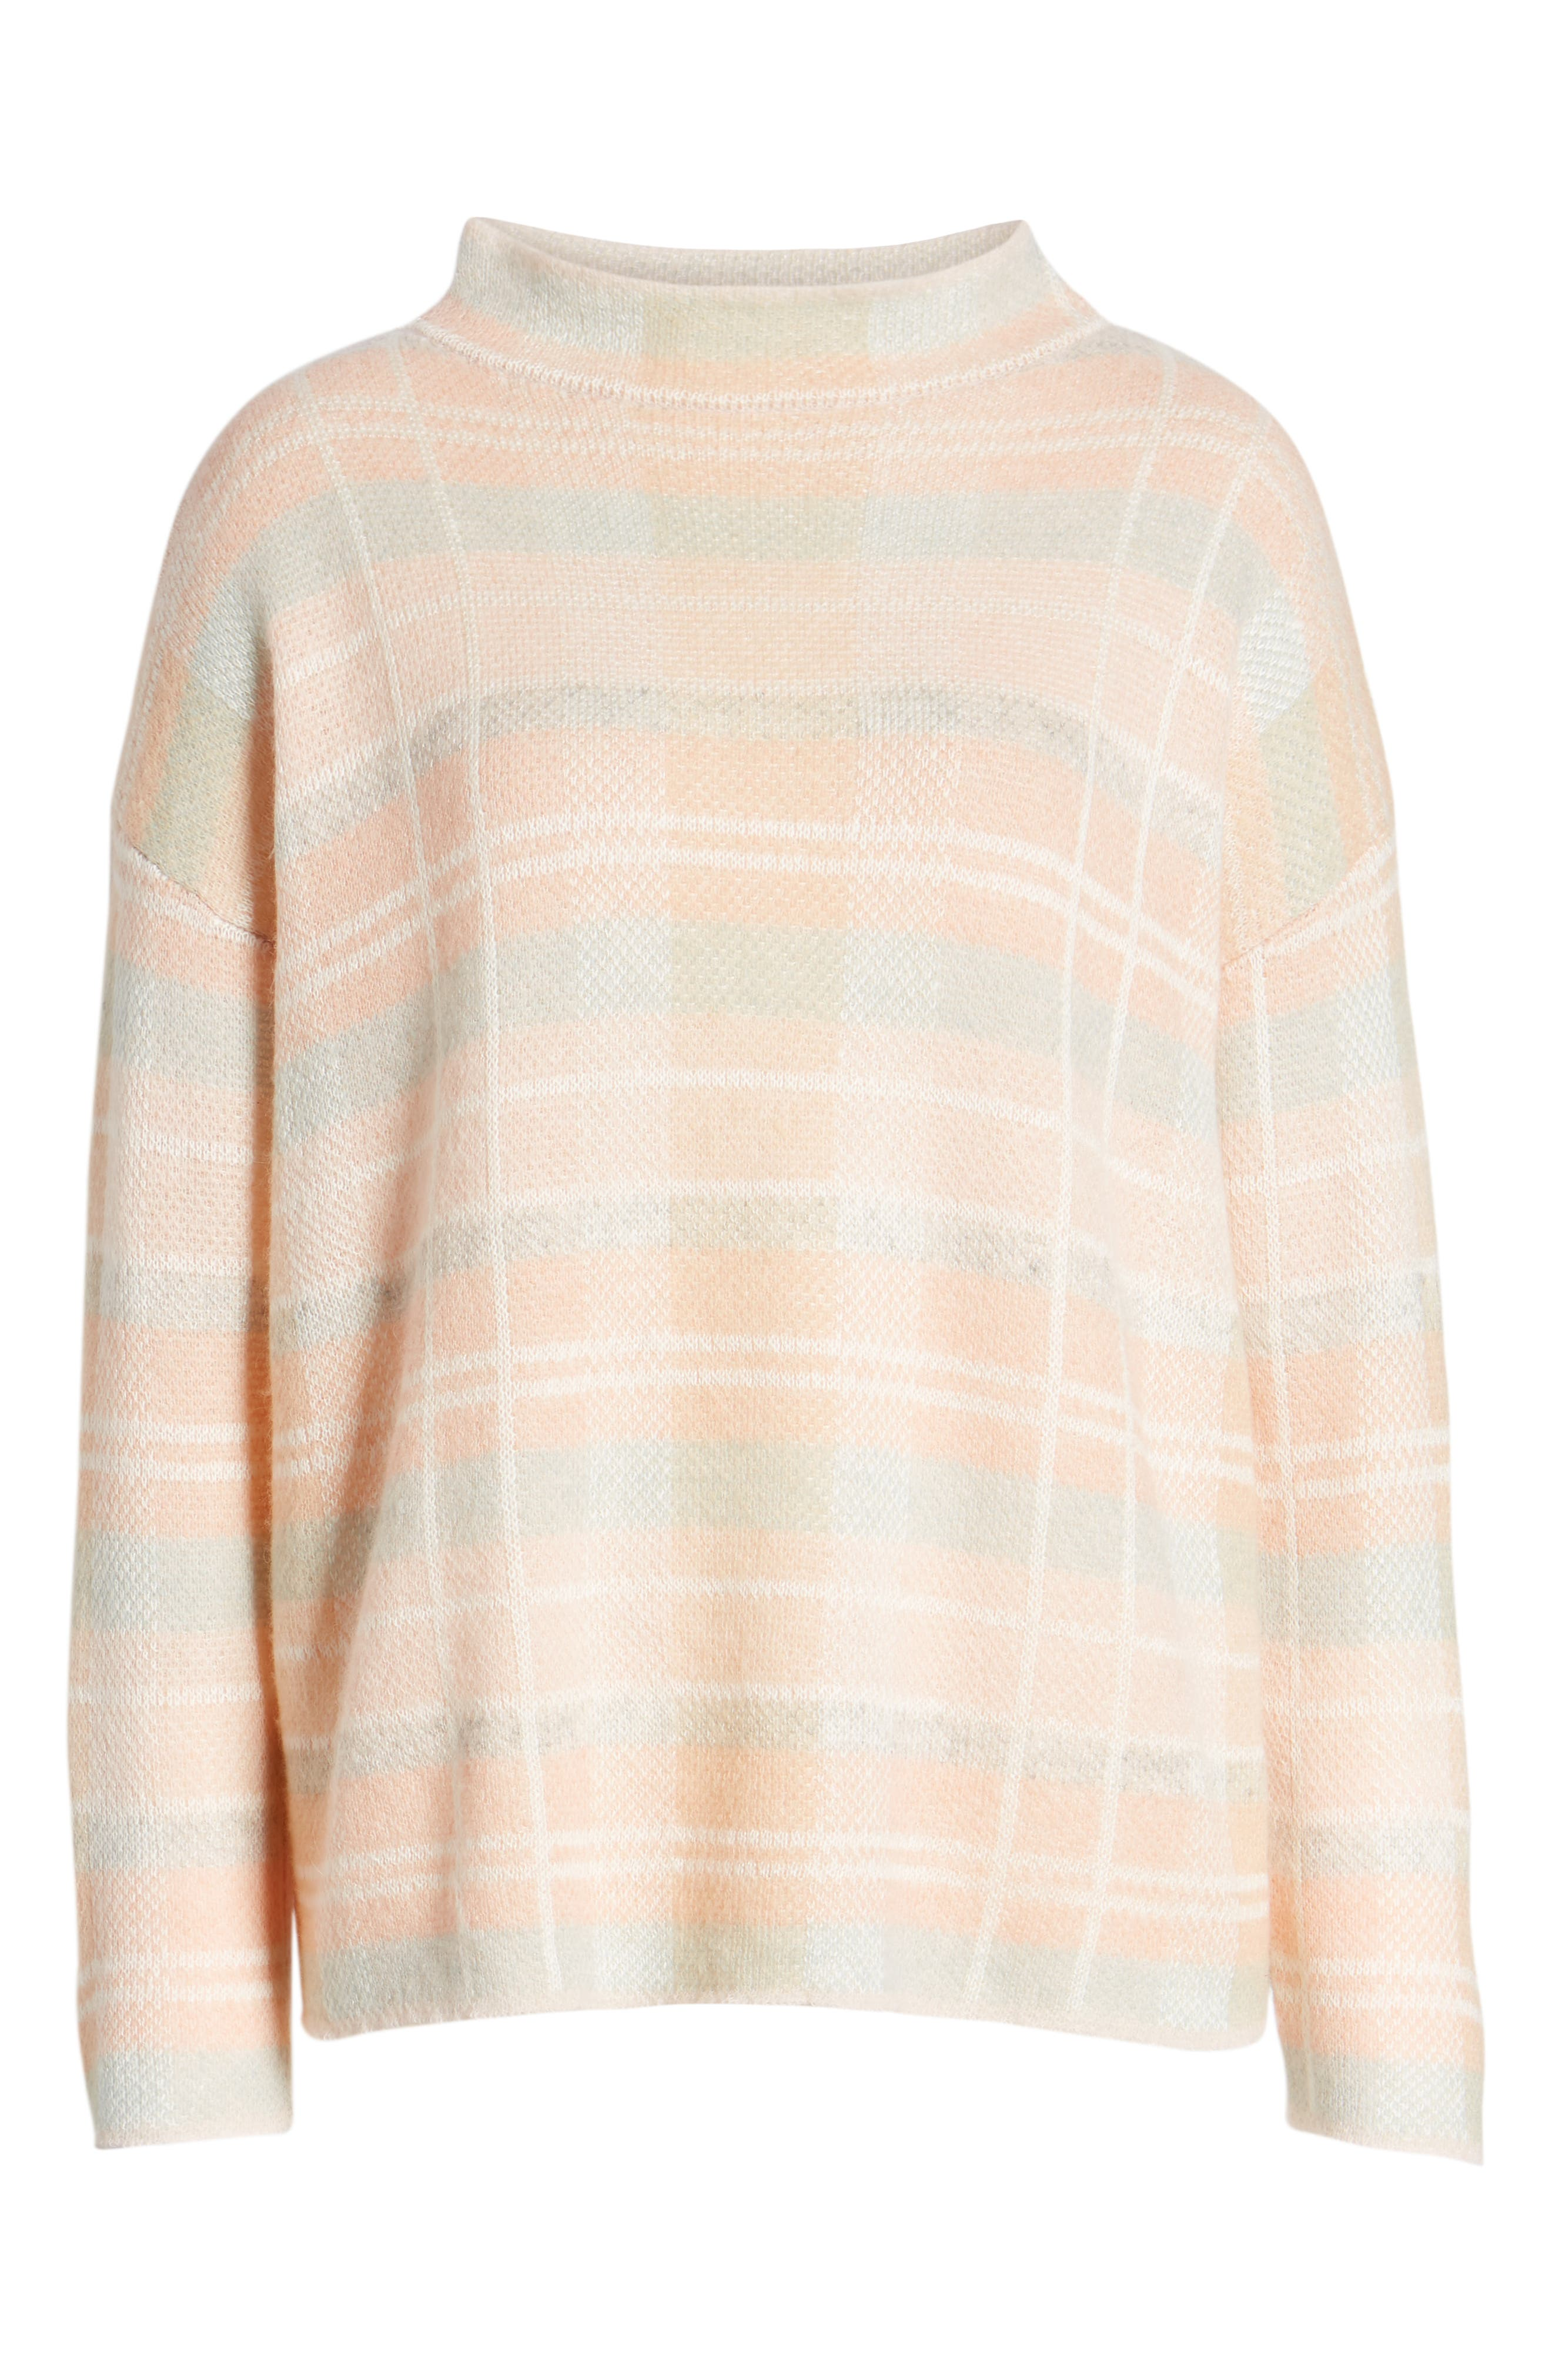 Plaid Mock Neck Sweater,                             Alternate thumbnail 6, color,                             PINK PLAID AS SWATCH